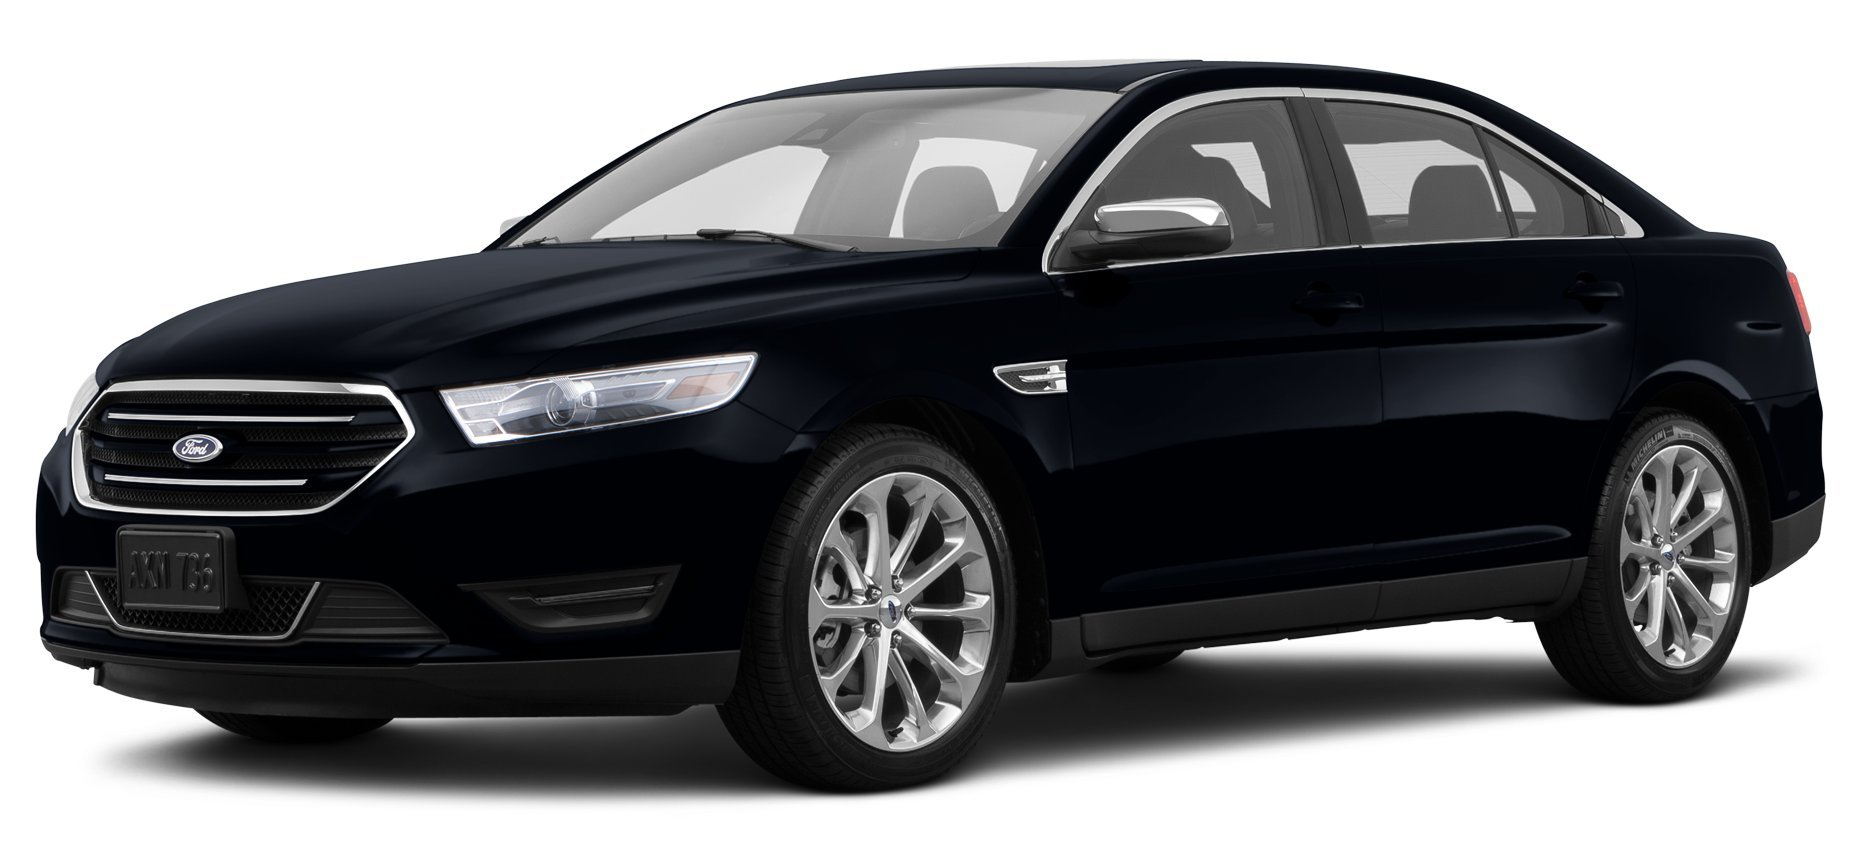 2014 ford taurus limited 4 door sedan all wheel drive